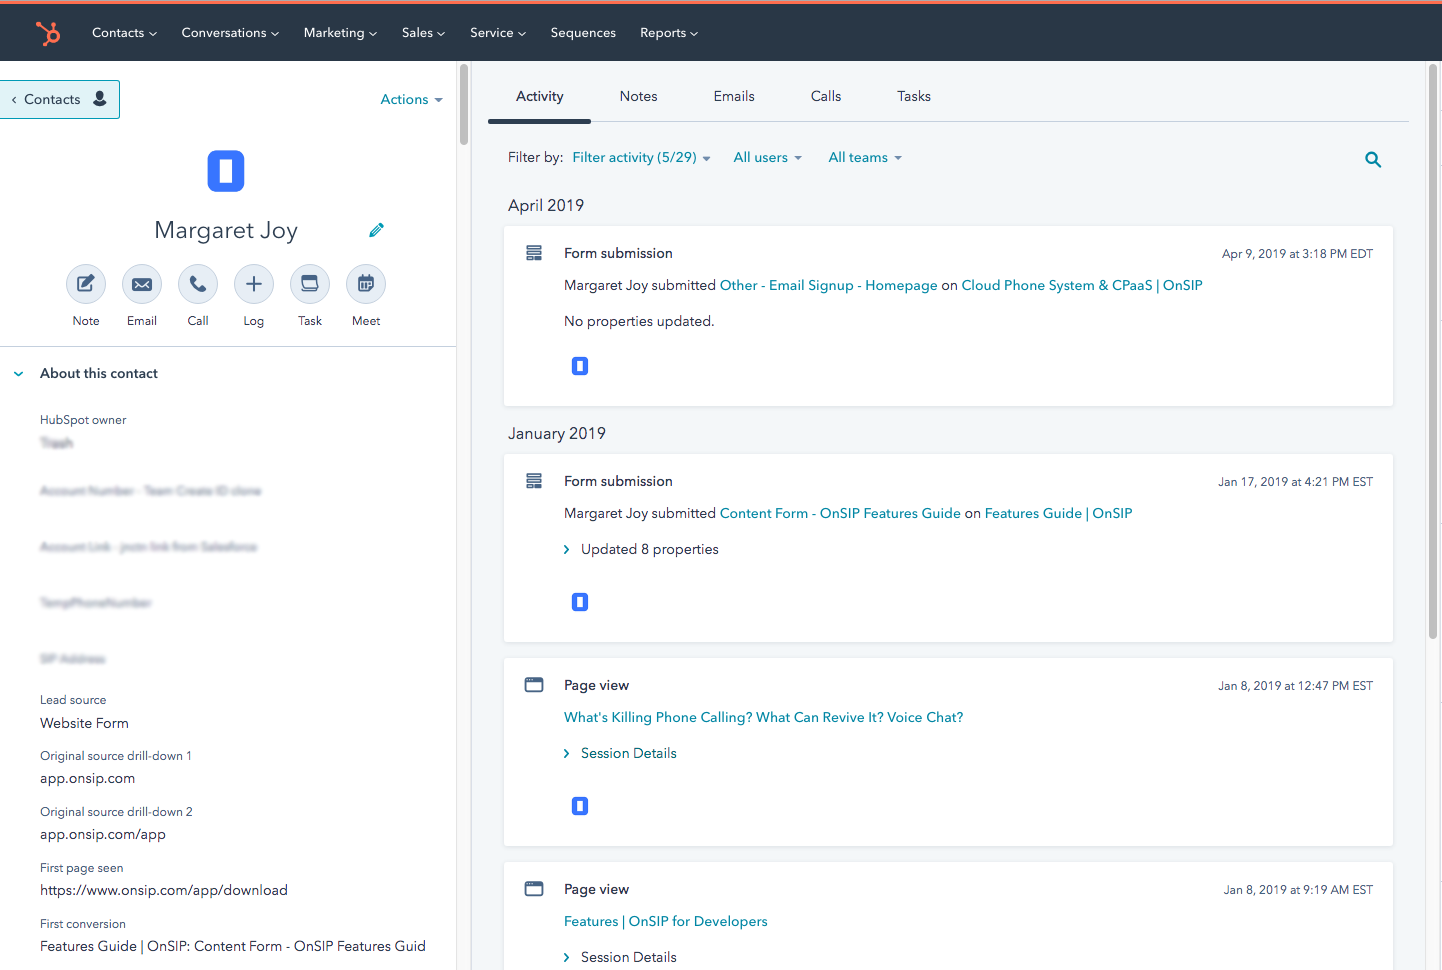 Screenshot showing the full CRM contact record view in HubSpot, linked in the incoming sayso call popup.